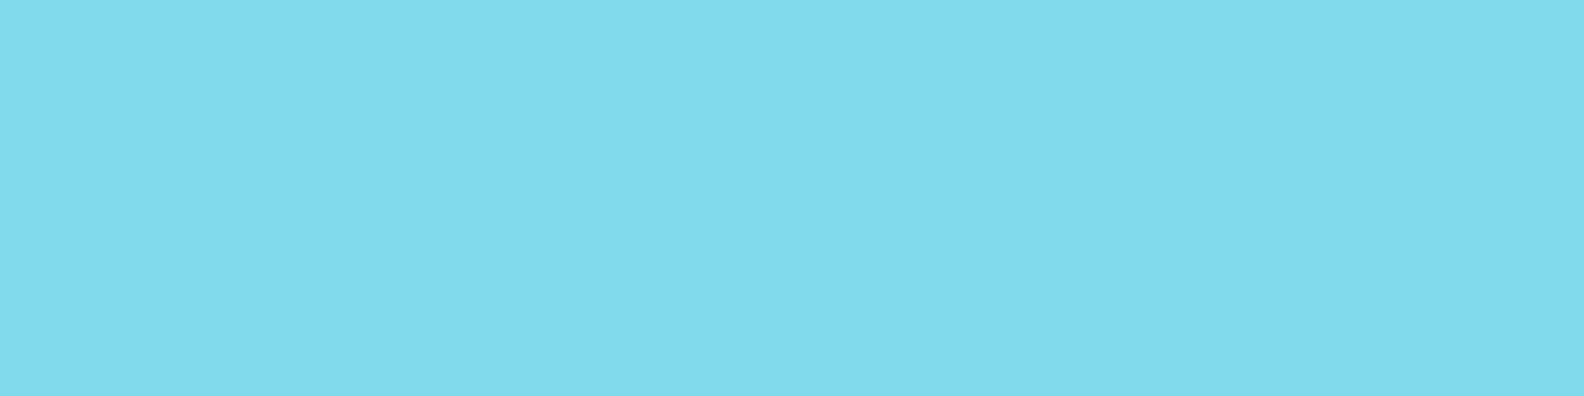 1584x396 Medium Sky Blue Solid Color Background